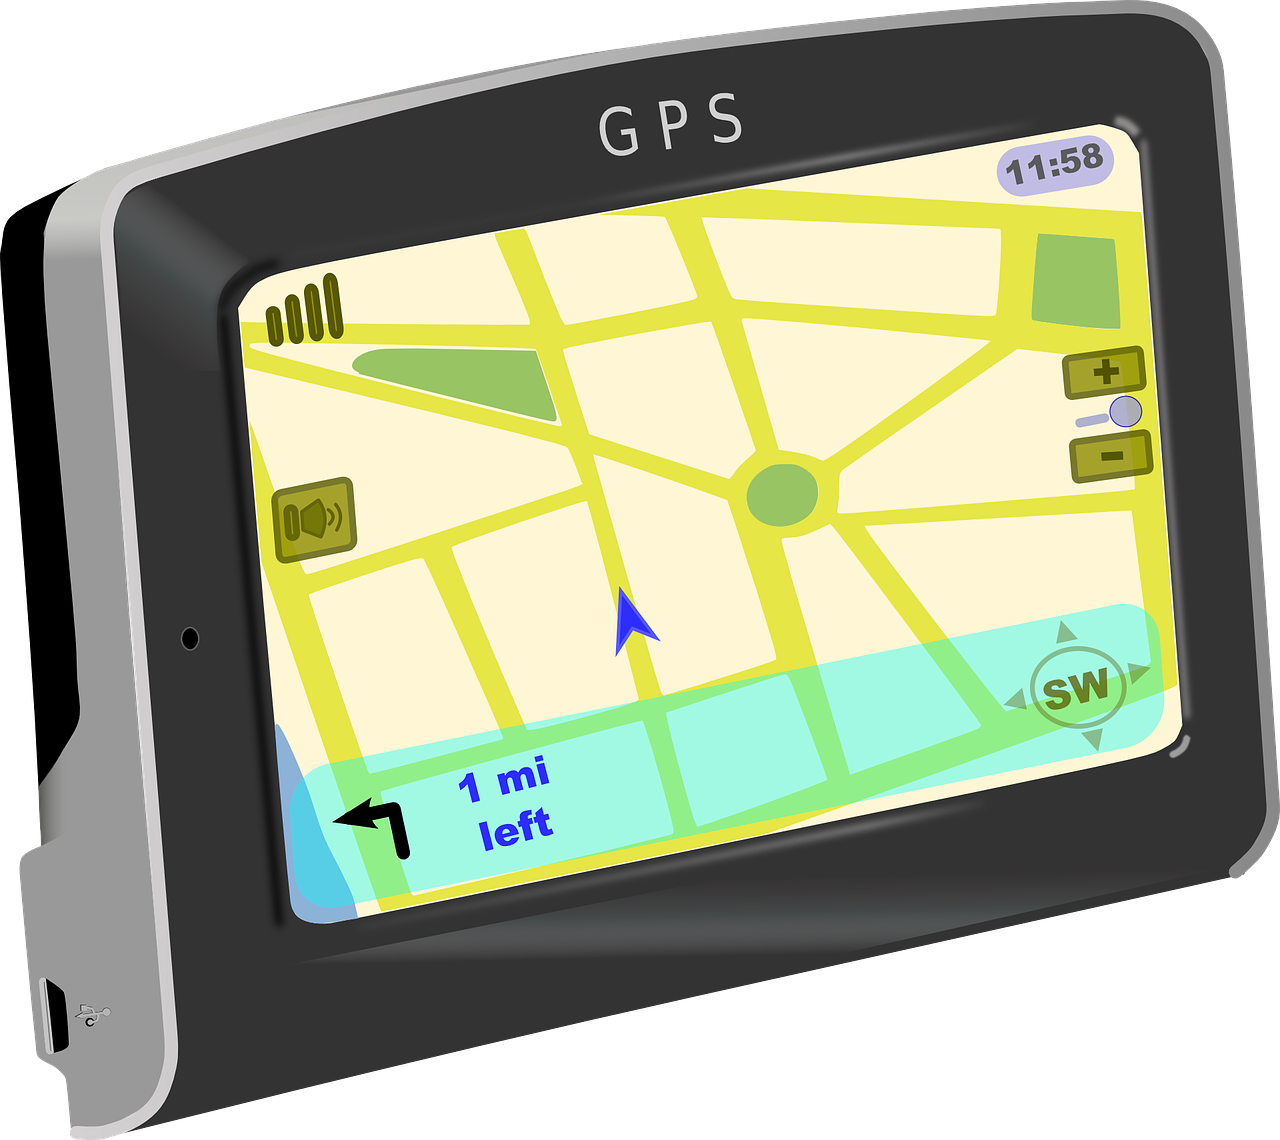 Gps clipart gps tracking. System aaisol